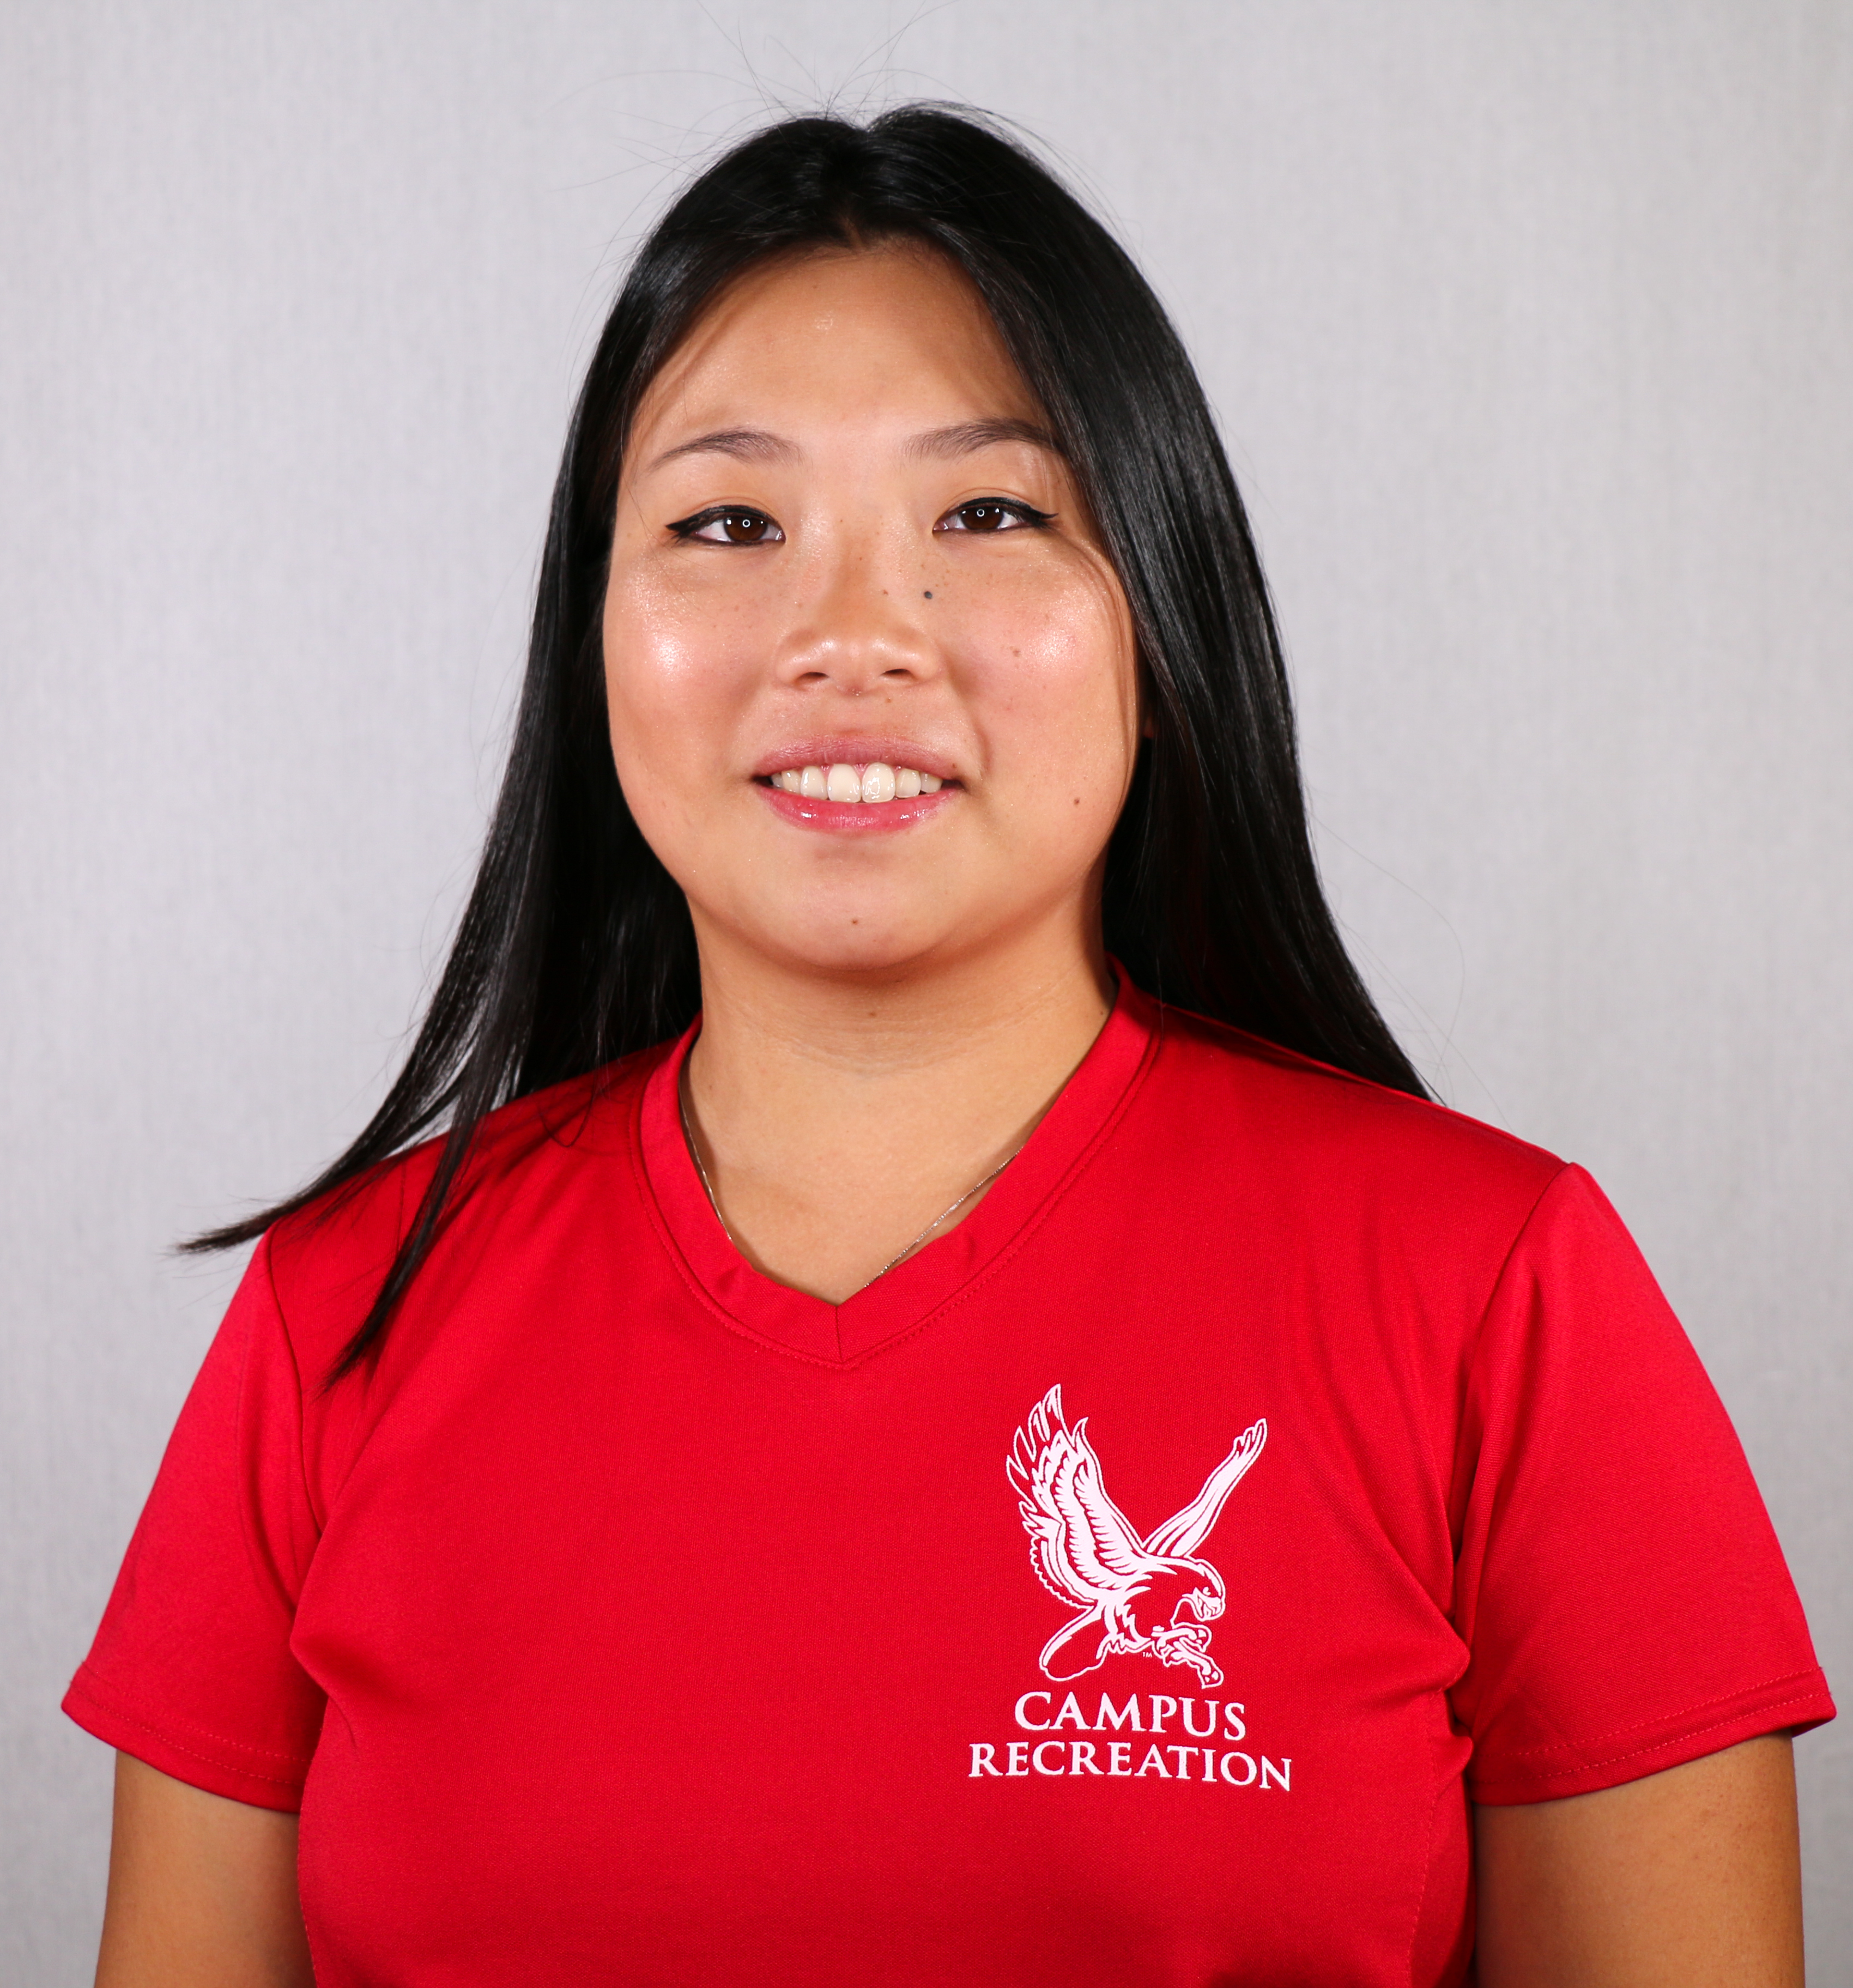 Headshot of Linda Mozdzen wearing a red Campus Recreation t-shirt.